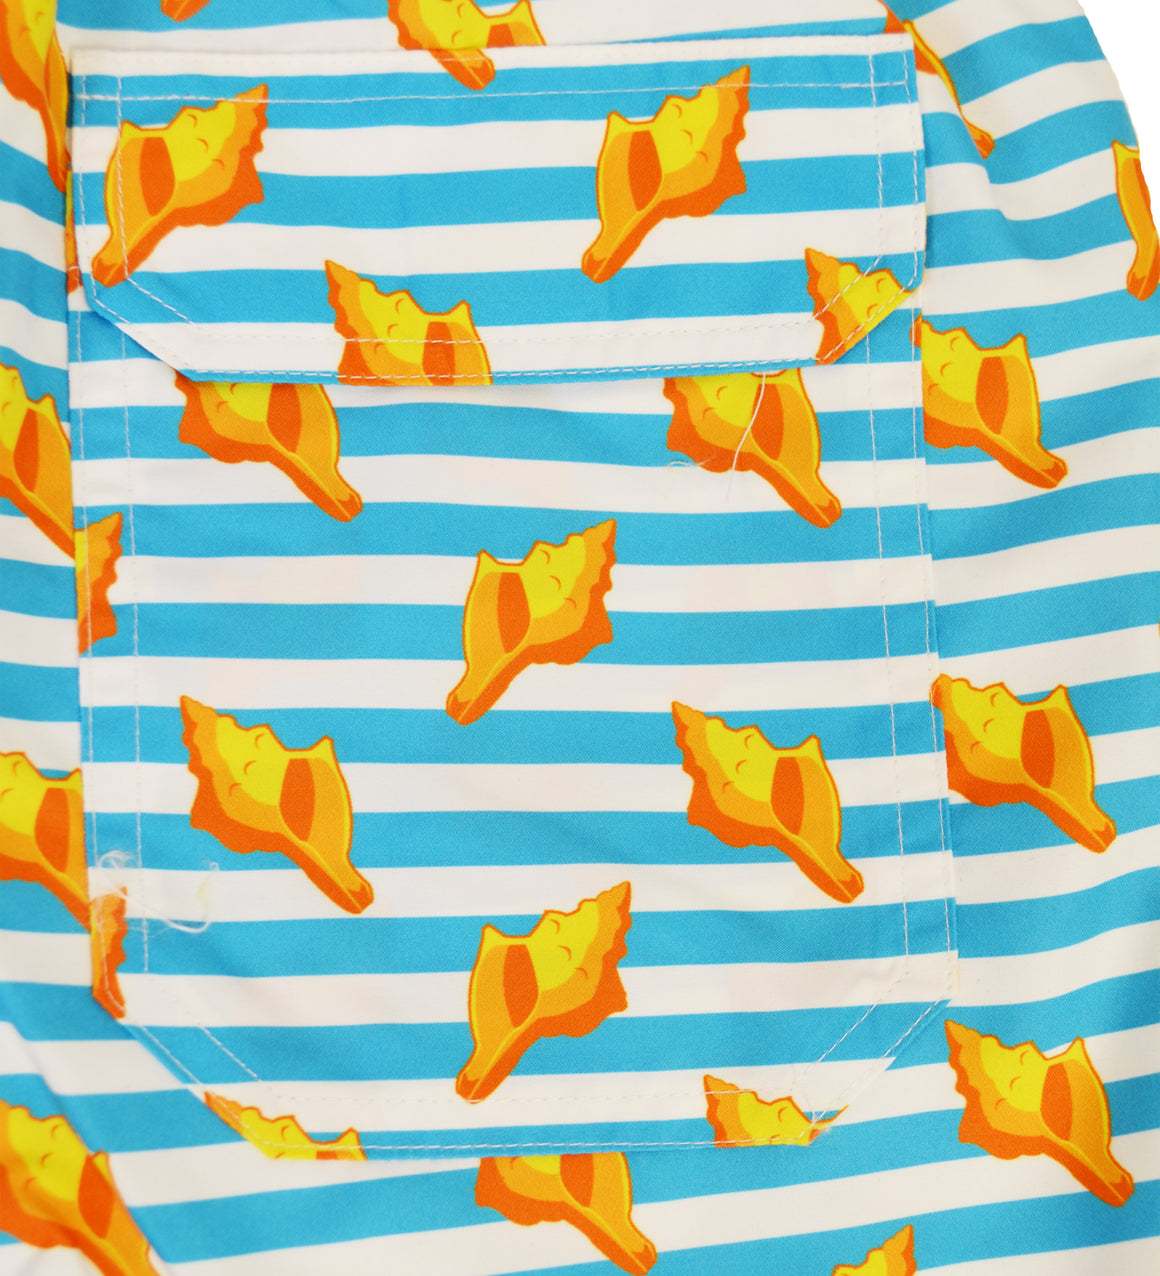 NEW Youth Swim Trunks - Conch Shells with Scuba Stripes